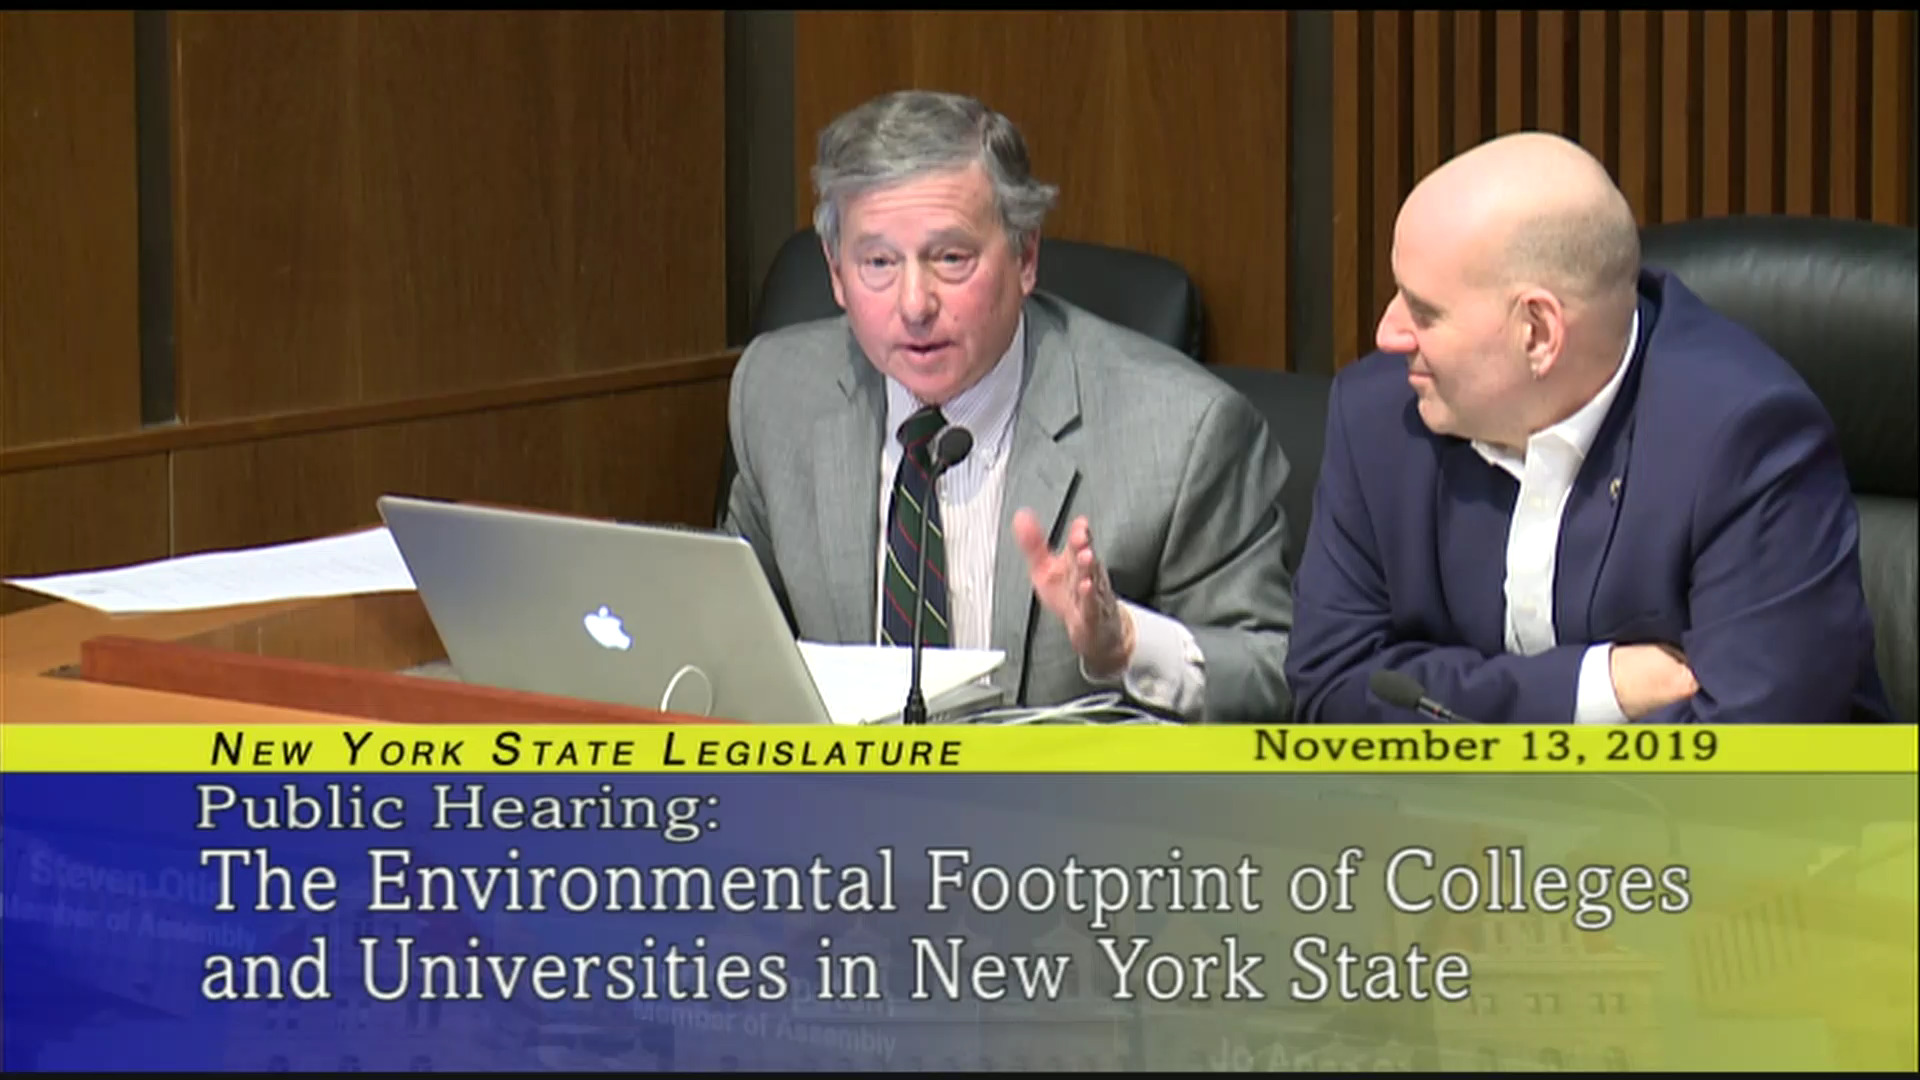 Discussion on the Environmental Footprint of Colleges and Universities in NY